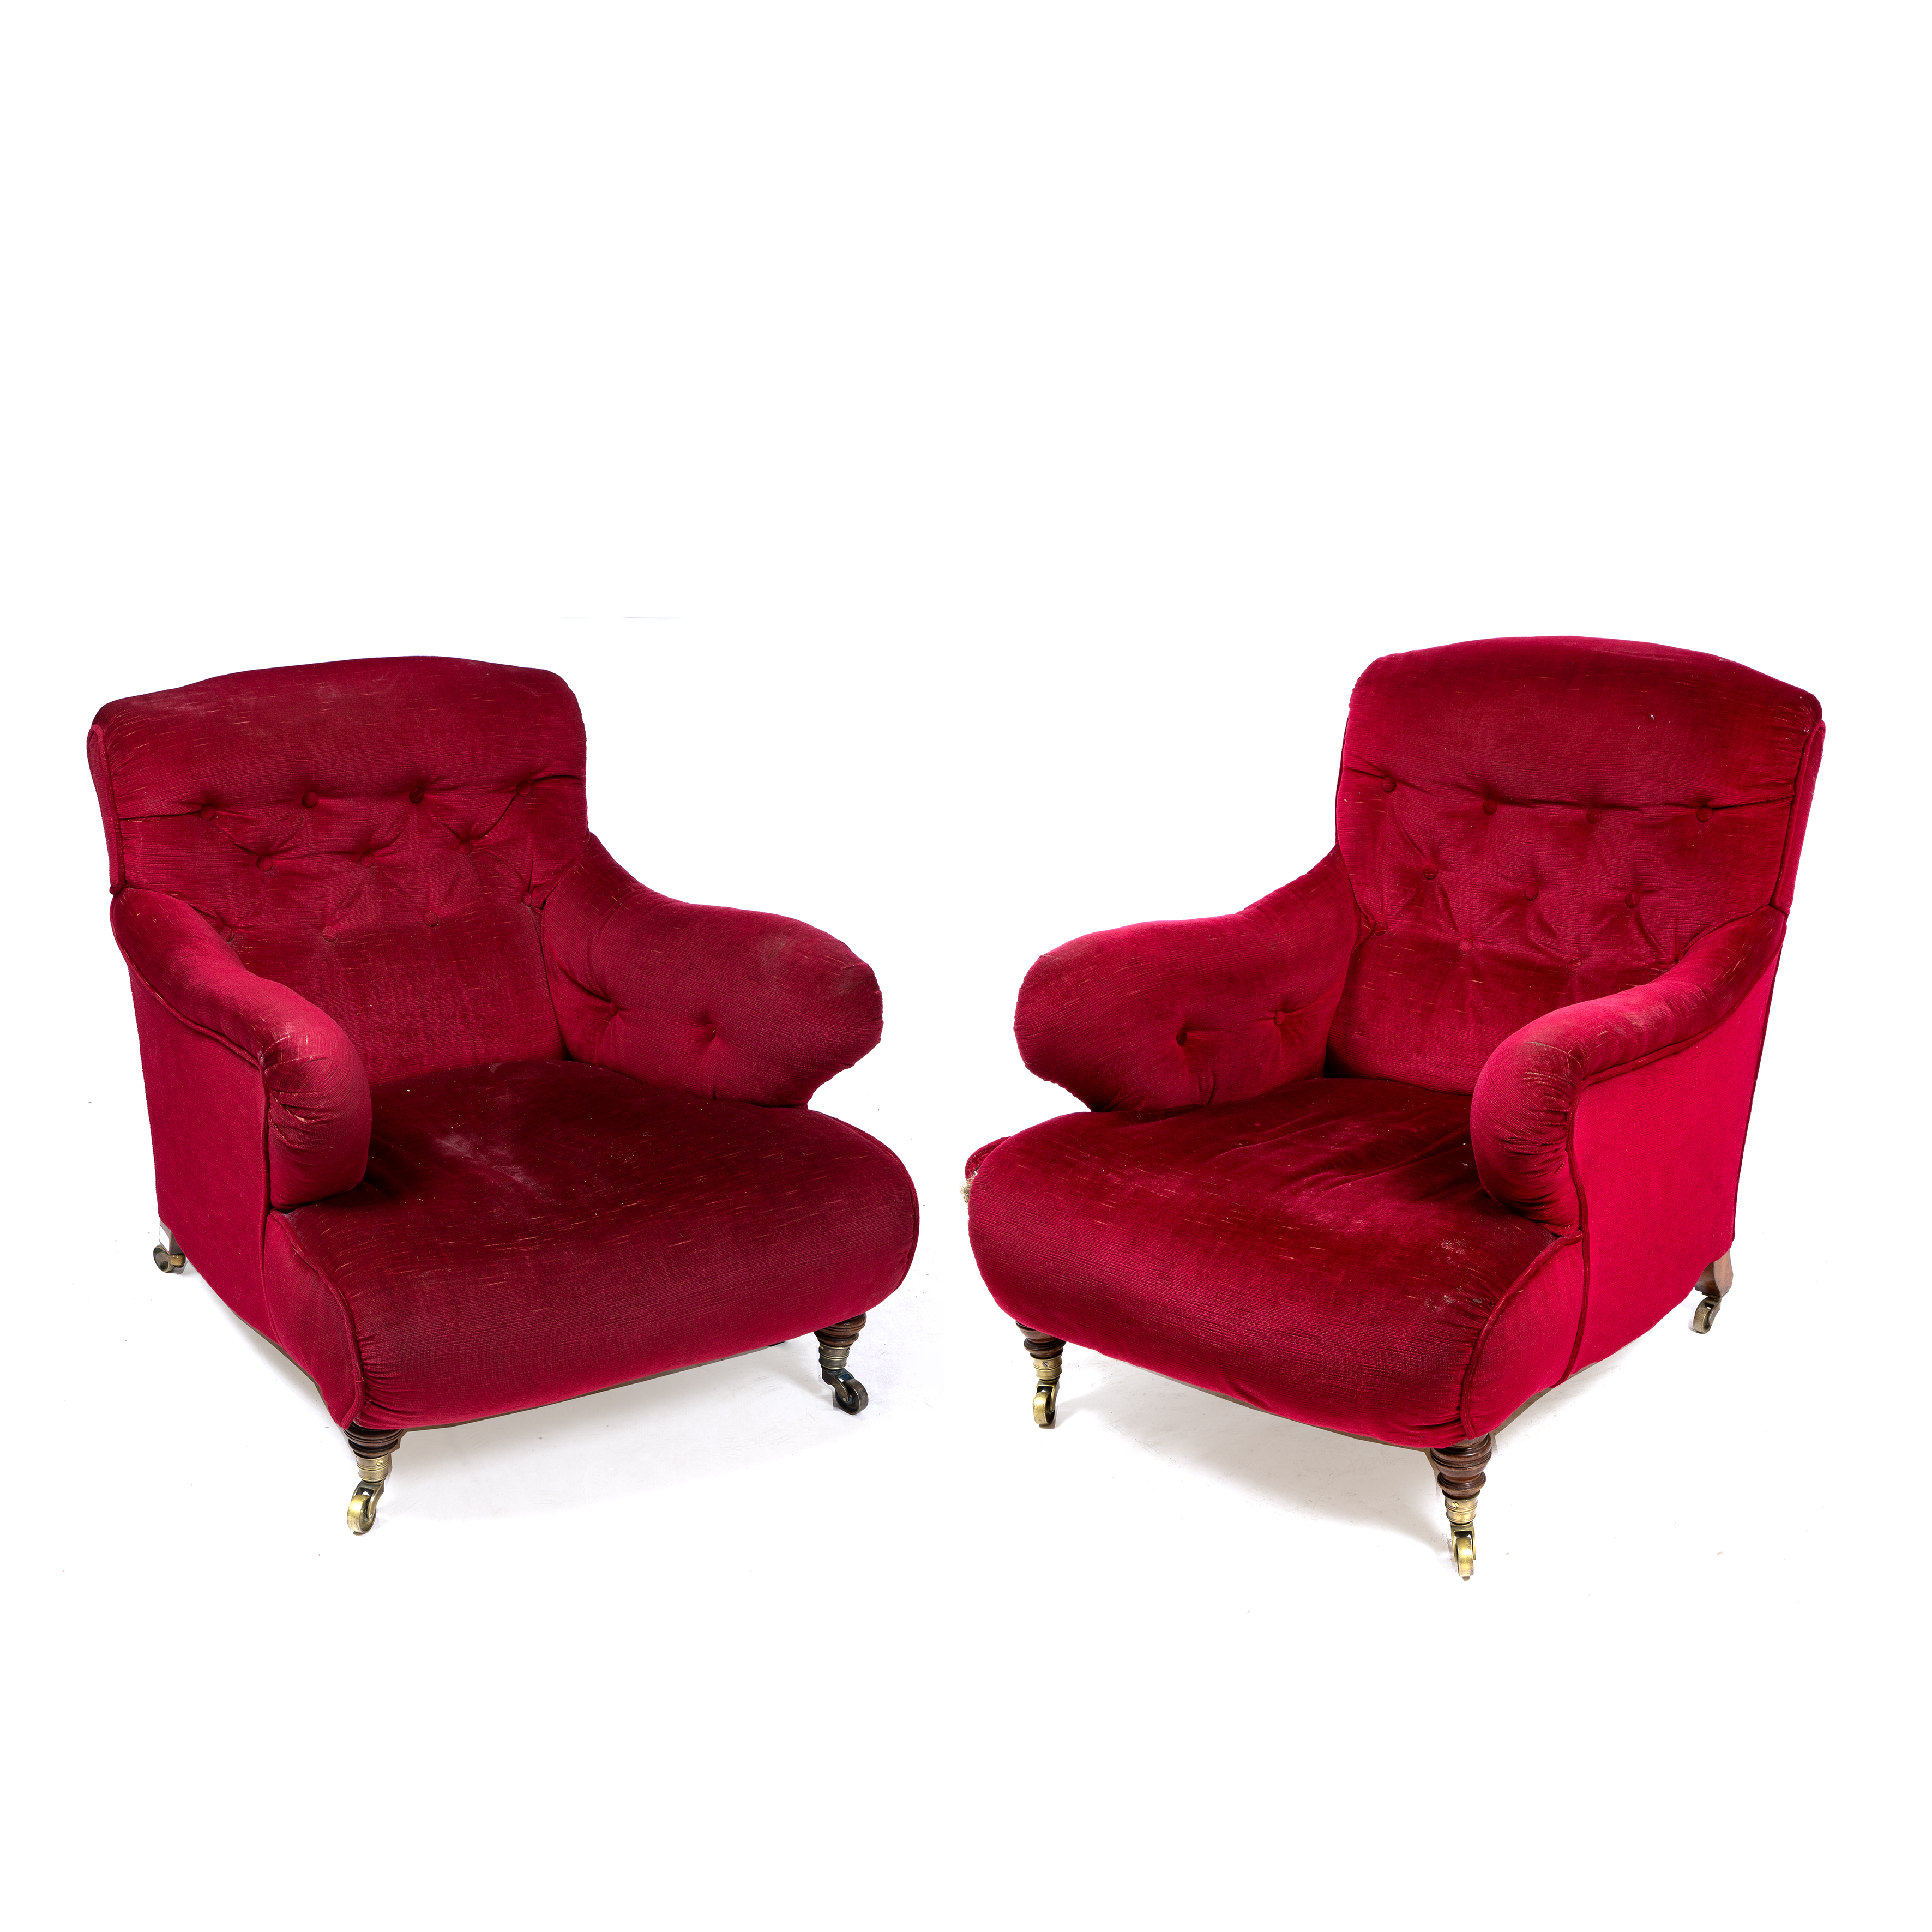 A PAIR OF HOWARD ARMCHAIRS Image